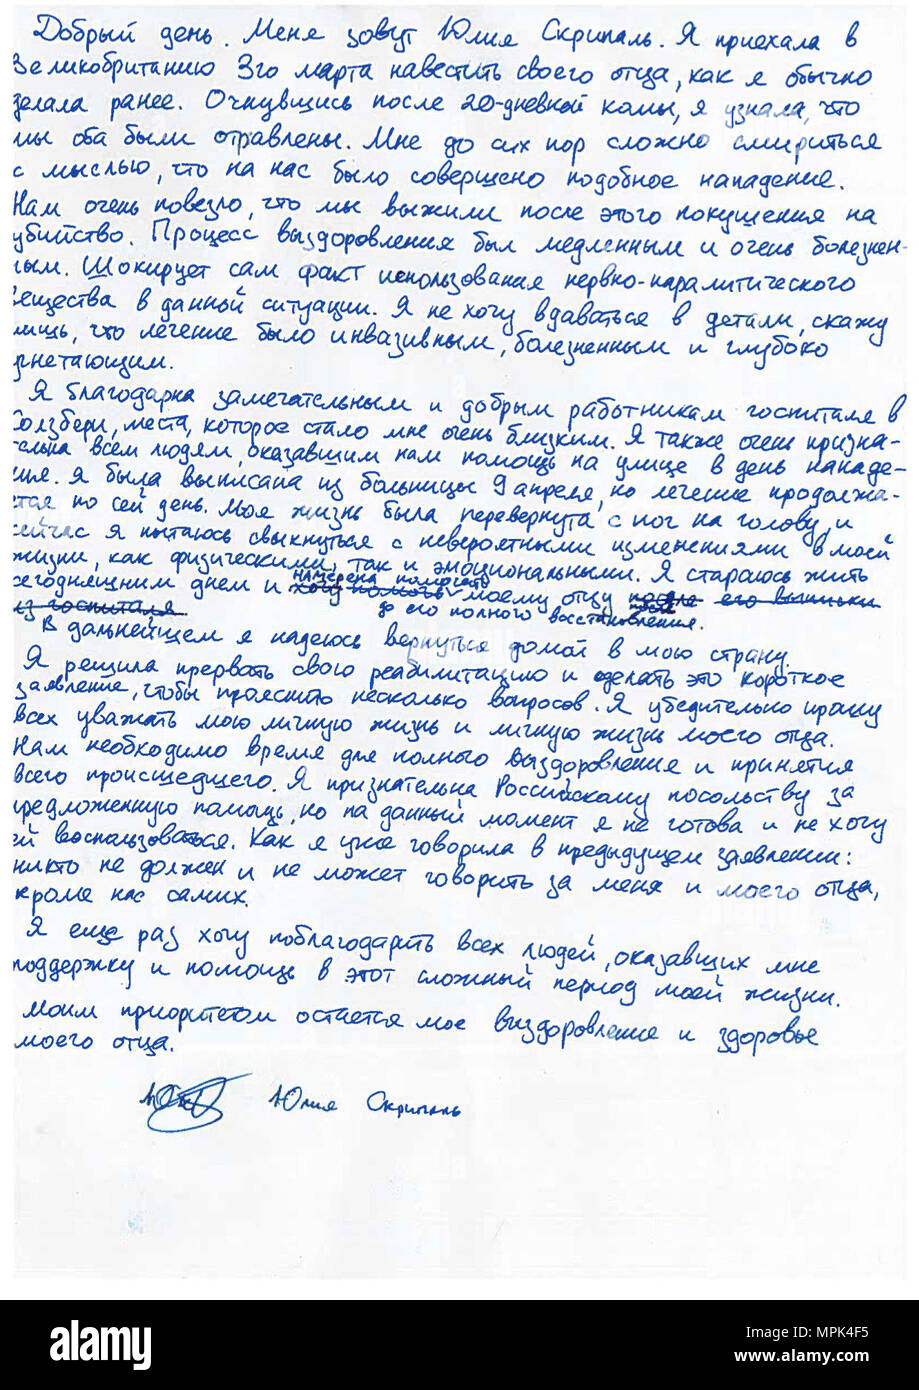 The signed, handwritten statement in Russian by Yulia